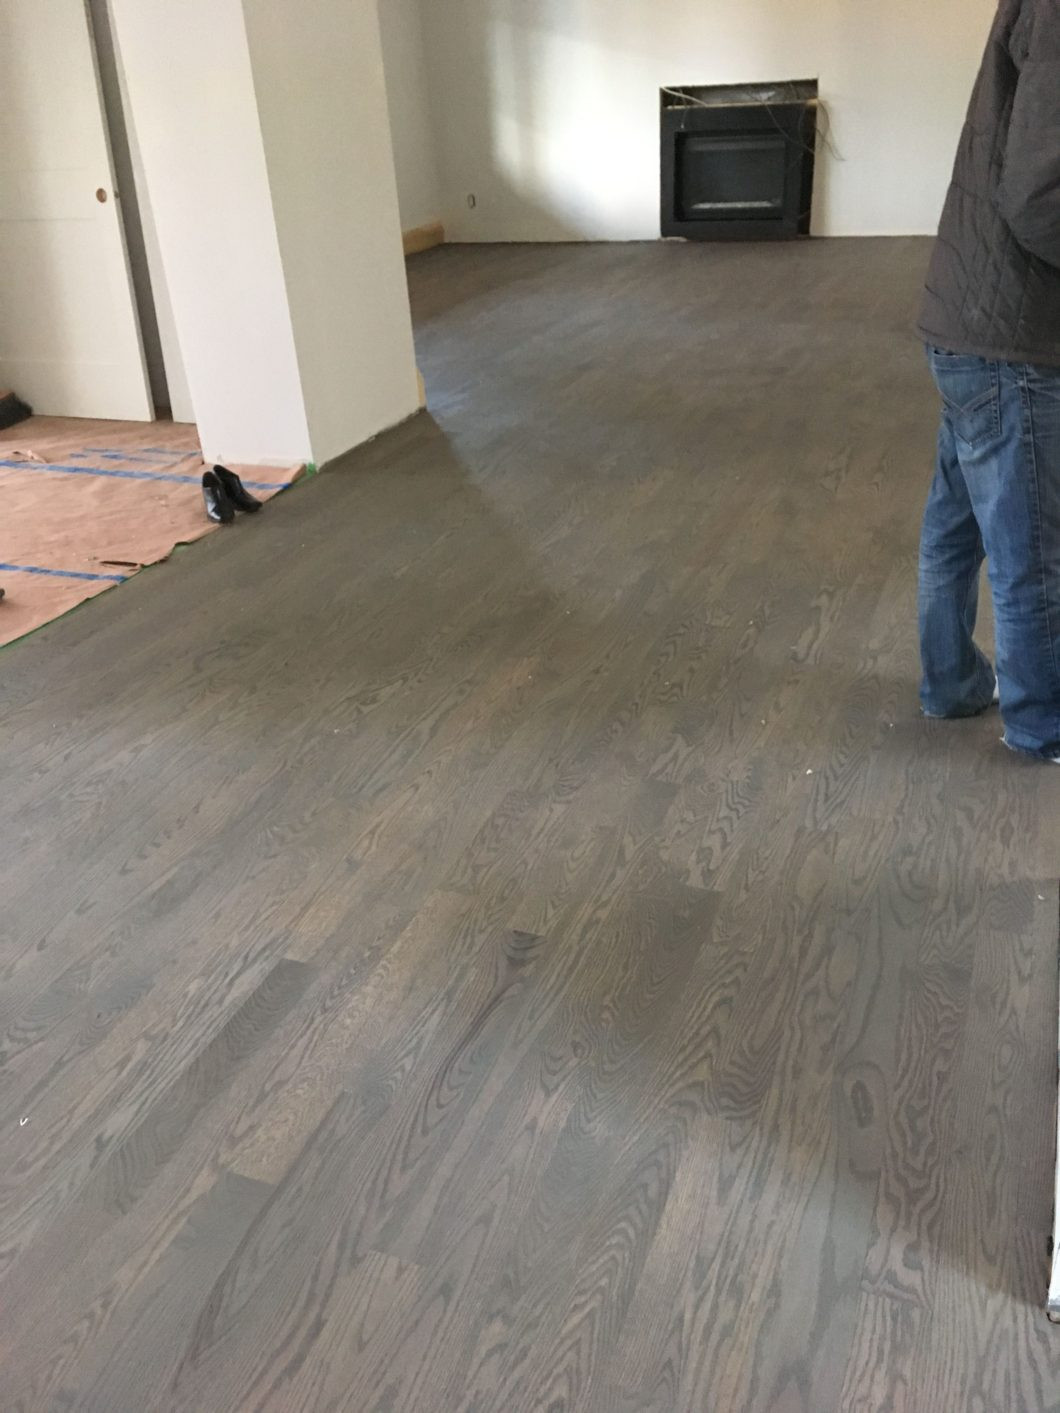 how to refinish hardwood floors yourself without sanding of restaining hardwood floors restaining hardwood floors darker regarding great methods use refinishing hardwood floors decorating sanding will life and beauty your floor room affordable